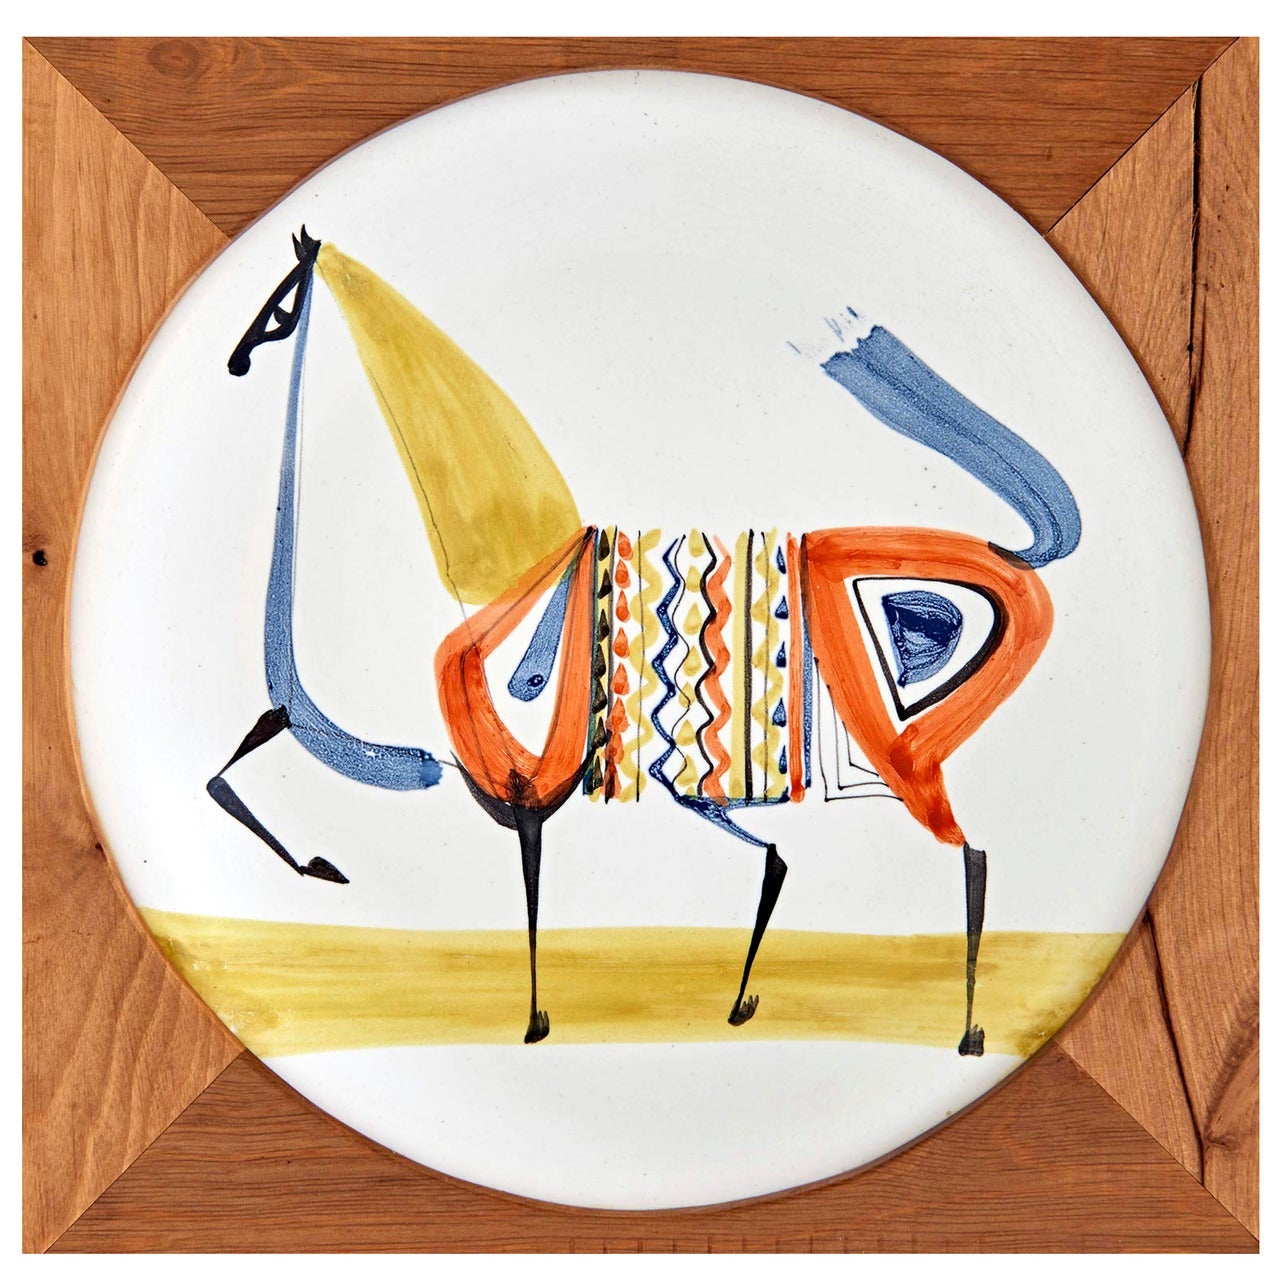 Plate by Roger Capron